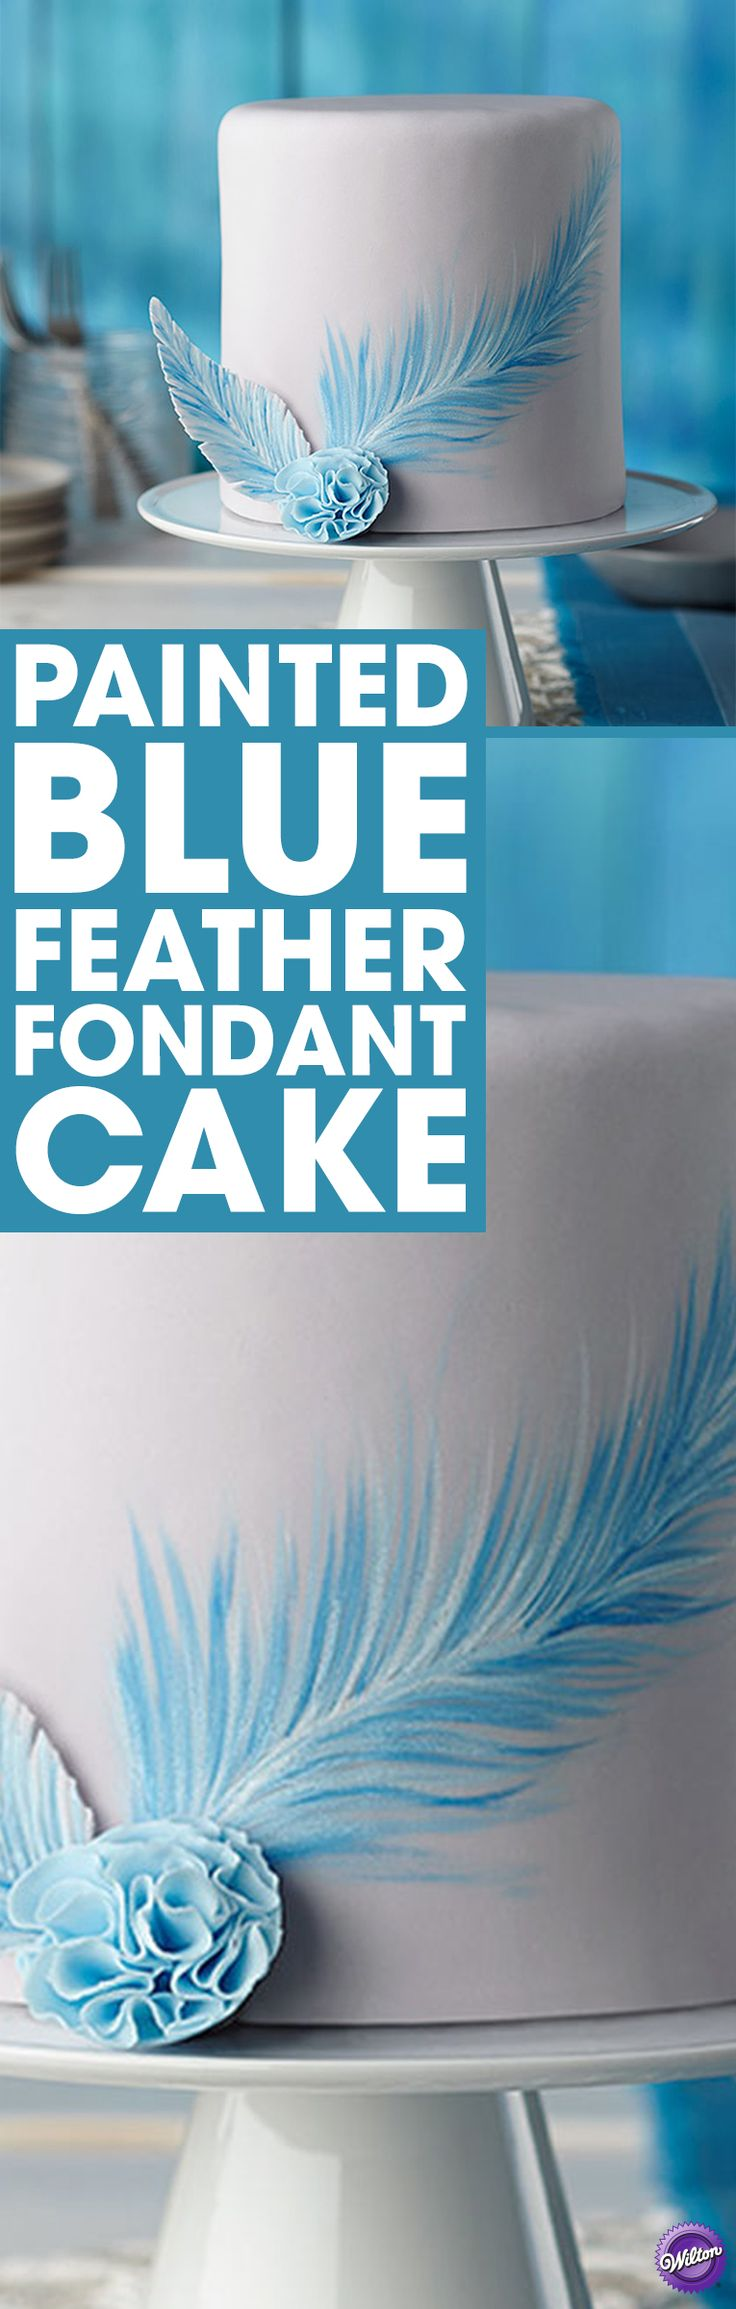 How to make a painted blue feather fondant cake - Delicate hand-painted touches add elegance to a smooth fondant cake. Use the Wilton Decorating Brush Set and Wilton Icing Colors to paint freehand details for one-of-a-kind works of art. Cake makes 12 servings.